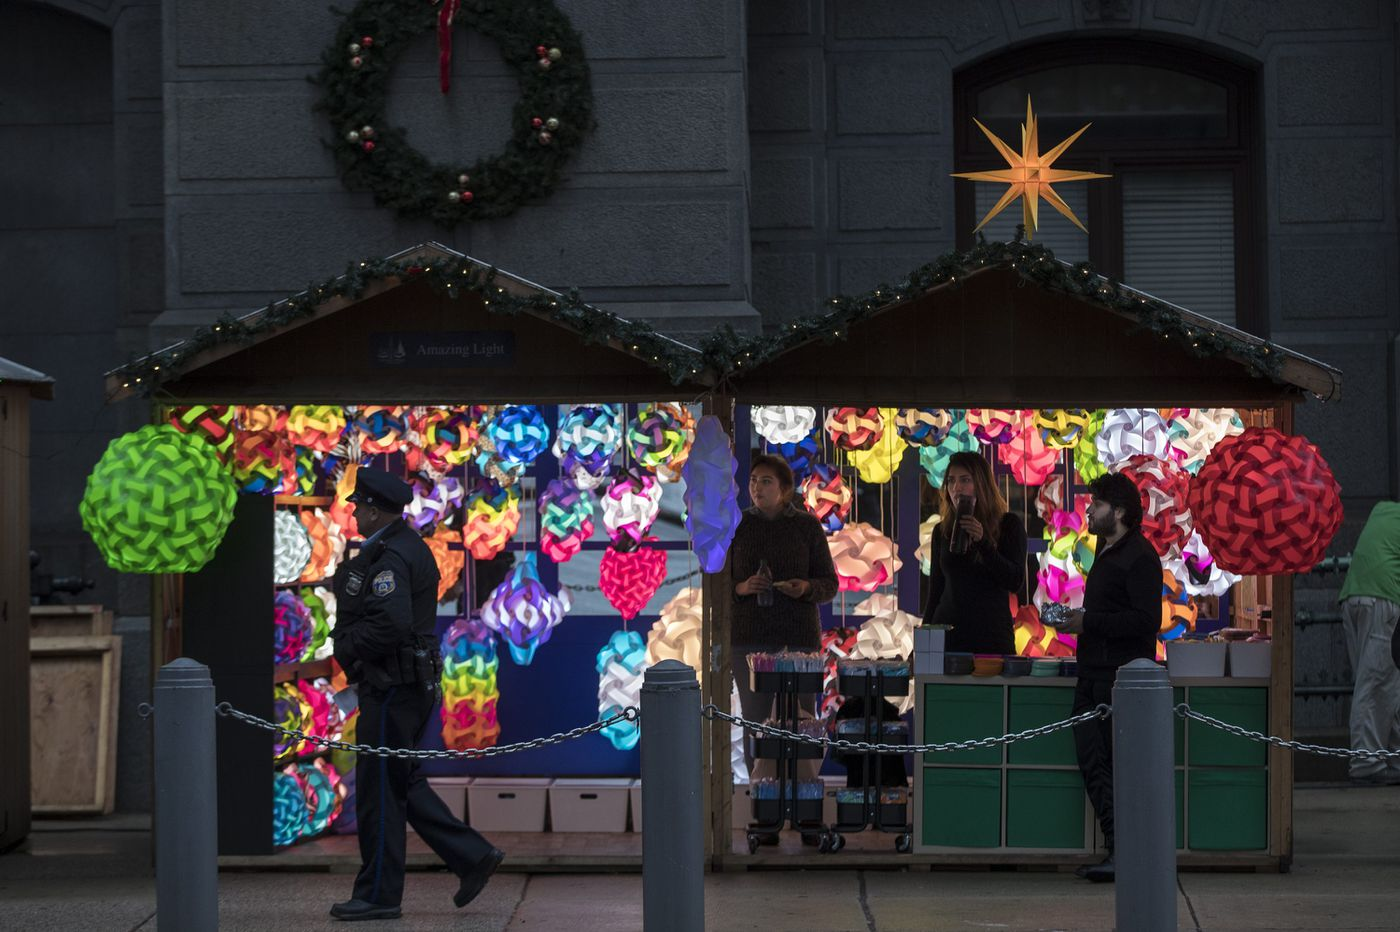 Christmas Village opening in LOVE Park for its 11th year on Thanksgiving